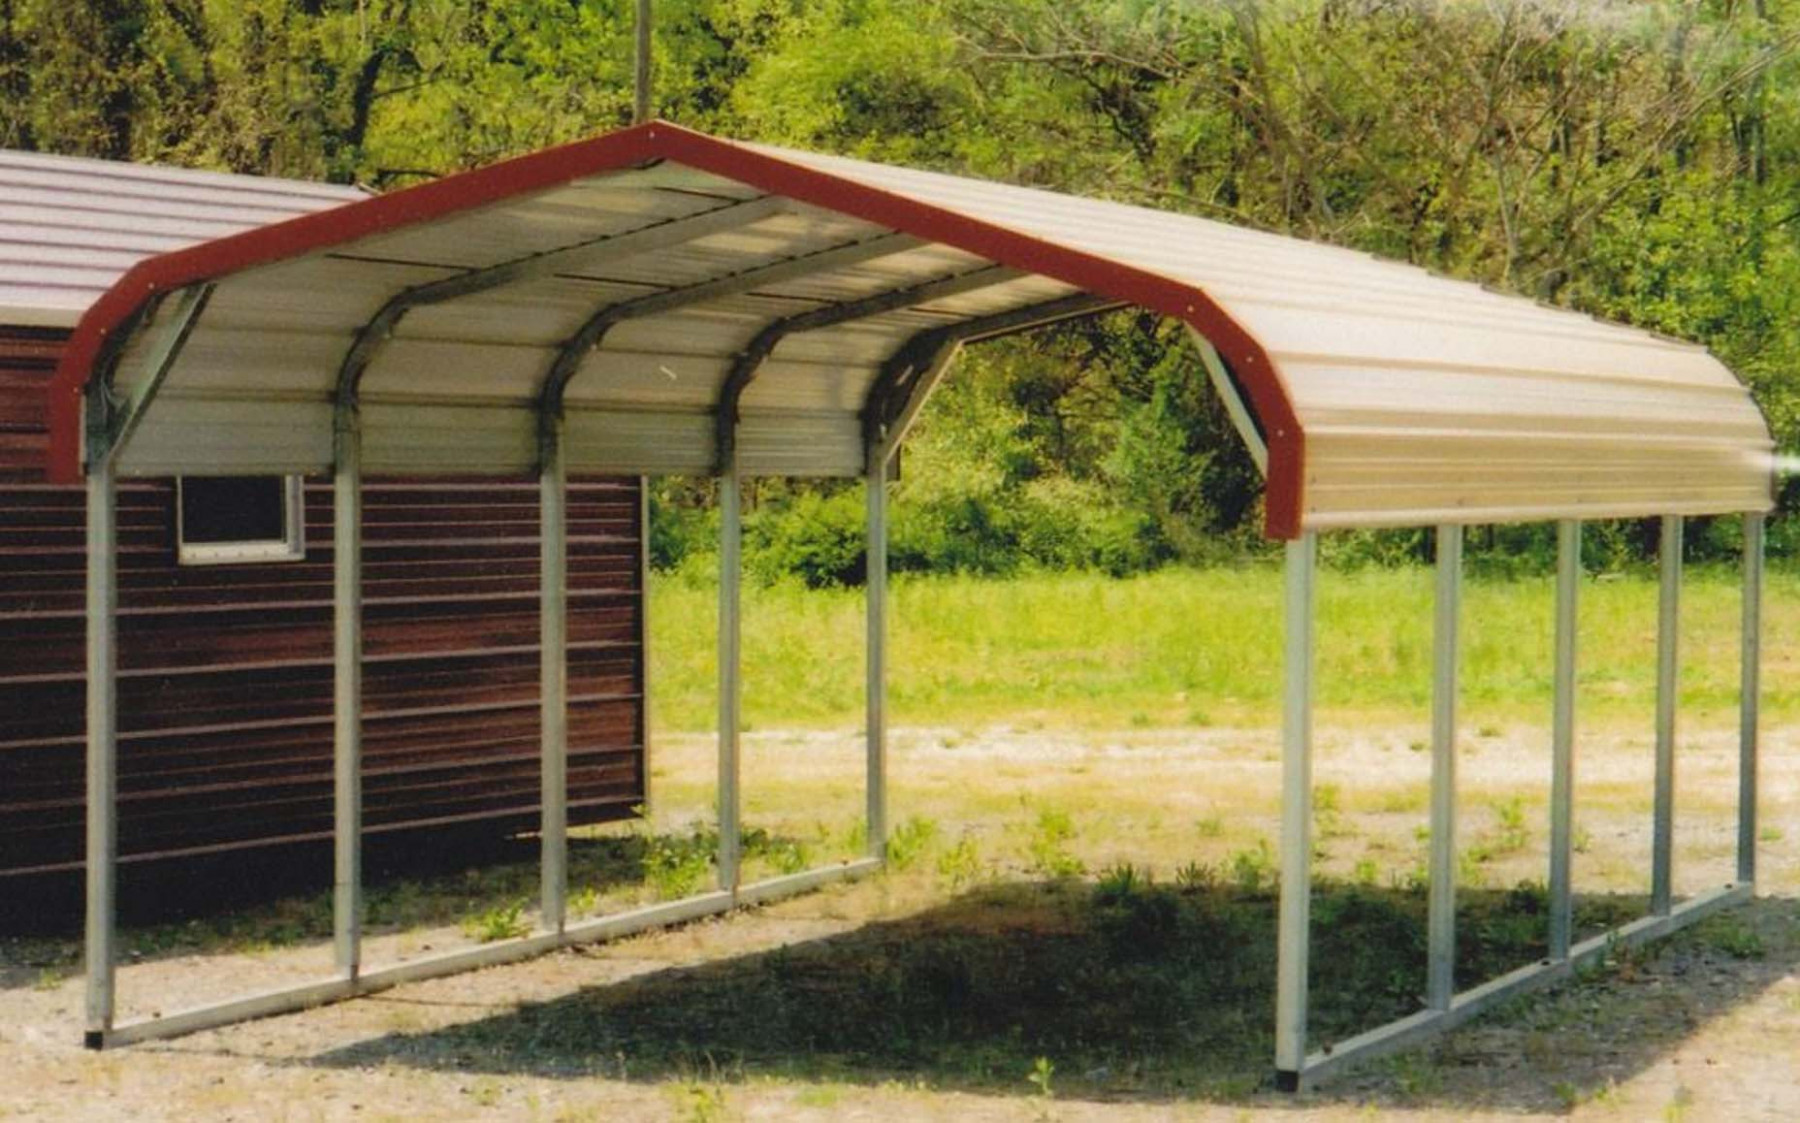 Southern Quality Carports, Garages, Lean To, Shed, Storage ..